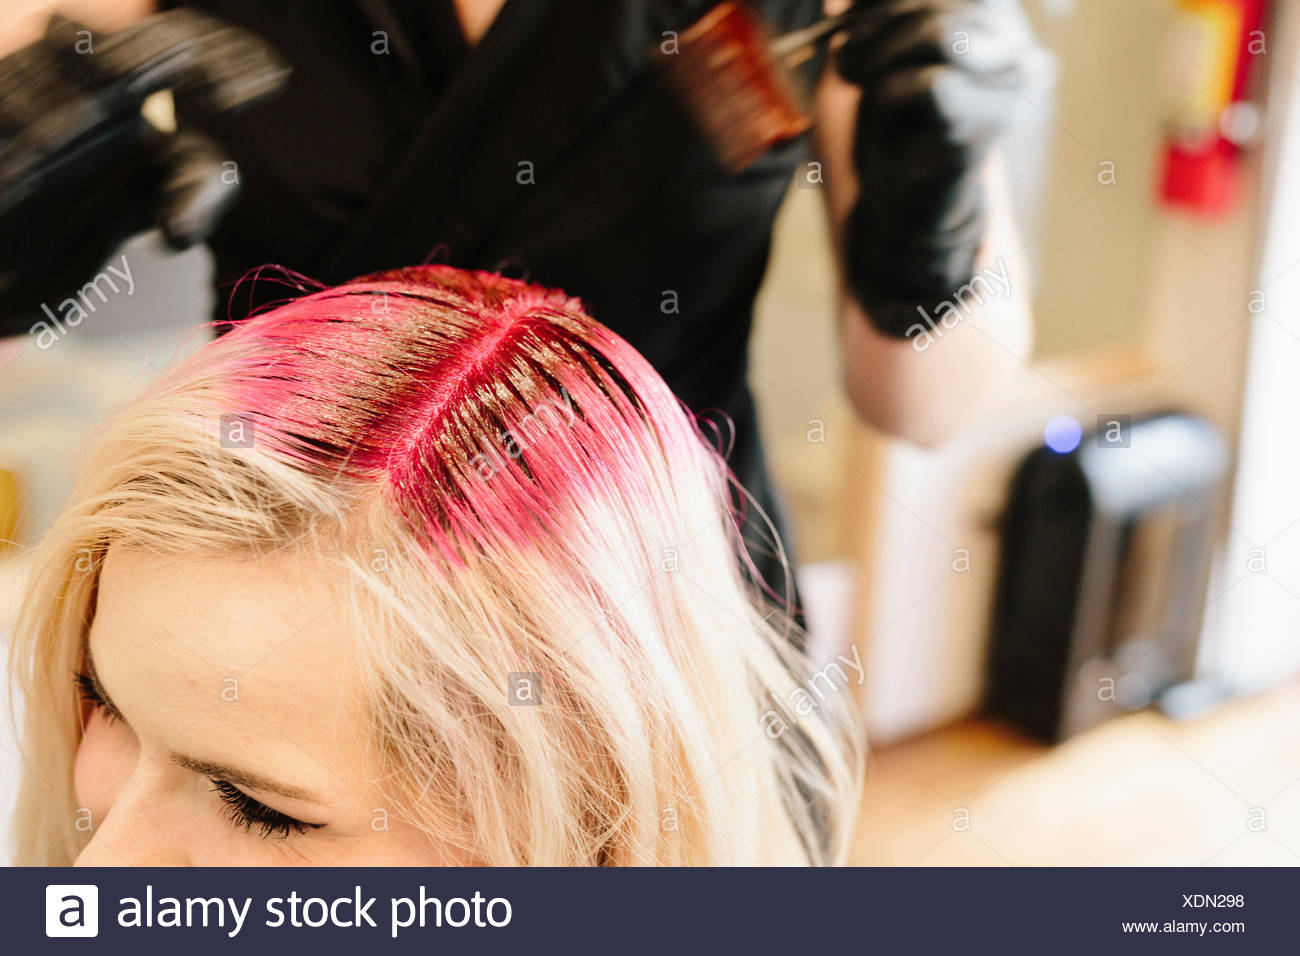 A Hair Colourist In Gloves Applying Red Hair Dye To A Clients